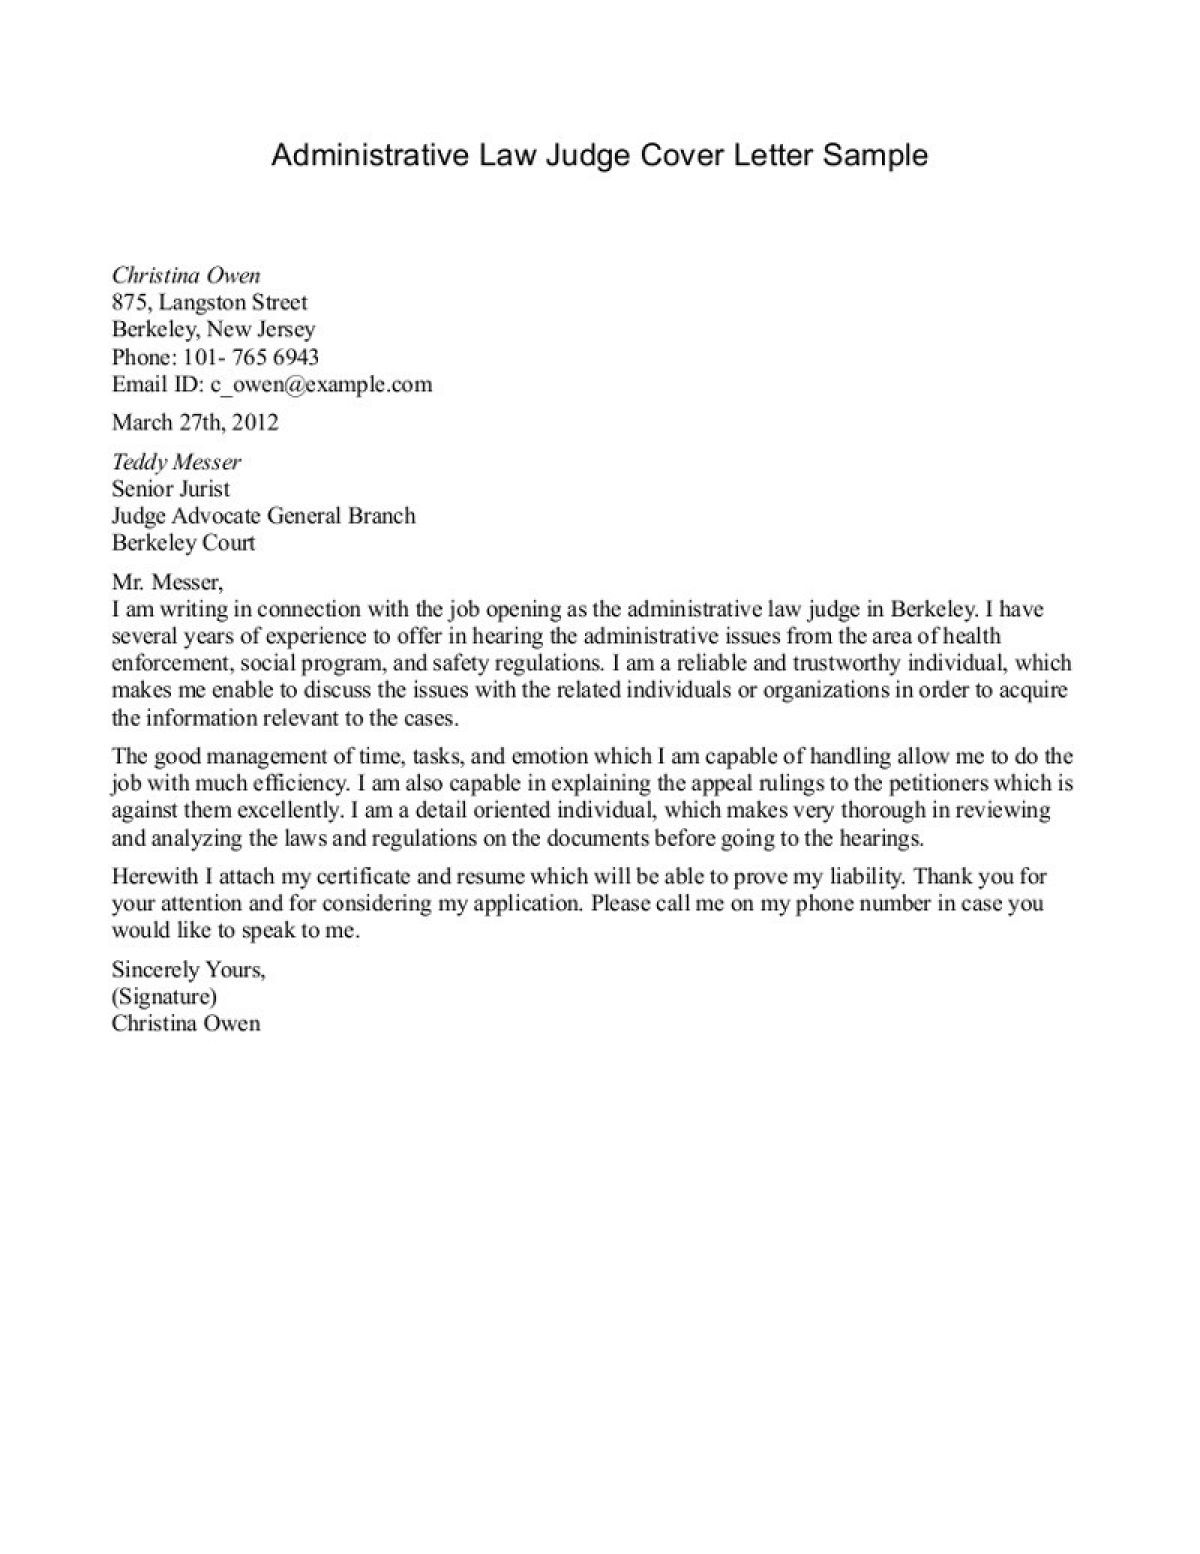 Administrative Law Judge Cover Letter Sample | Fans Share Images